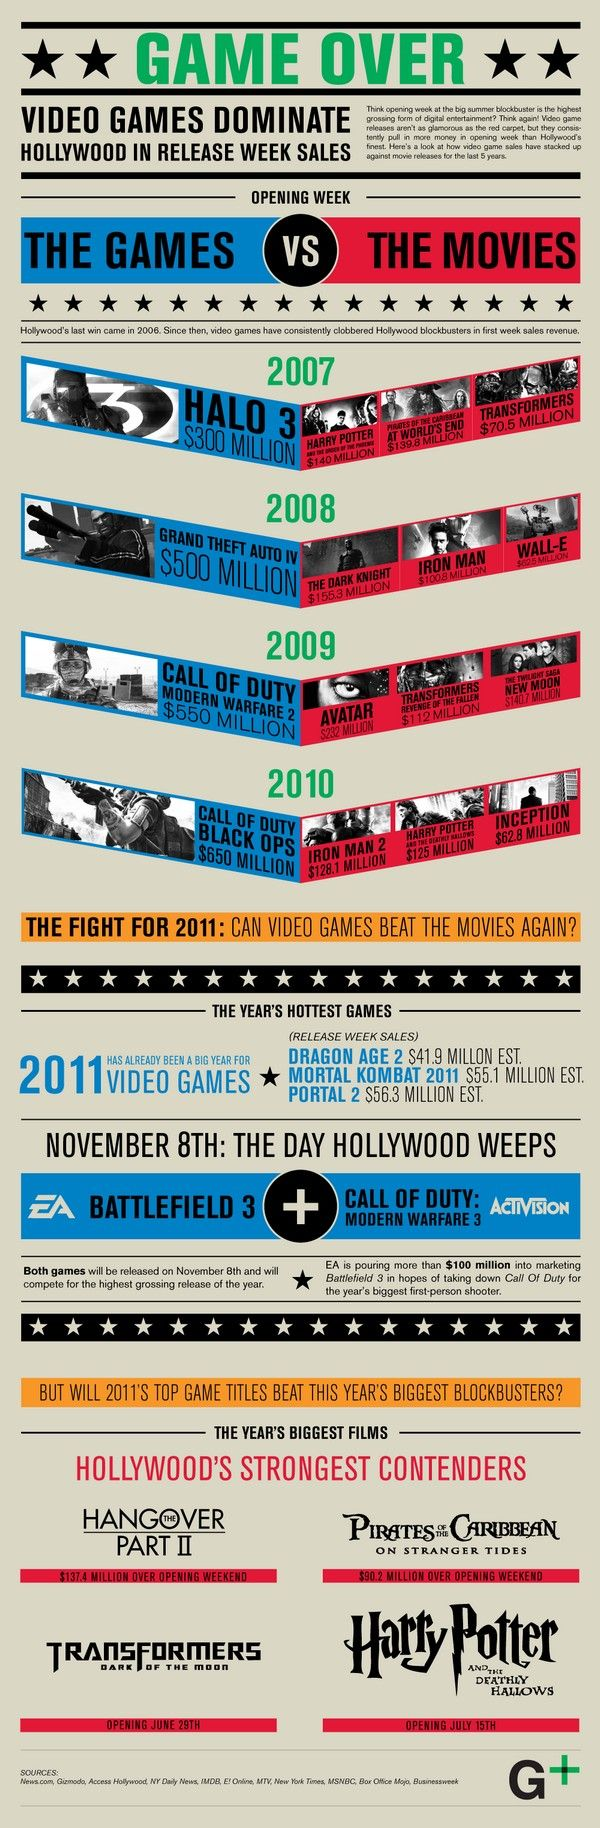 computer video game industry infographic 2013 | Video Games Dominate Hollywood In Release Week Sales [INFOGRAPHIC ...